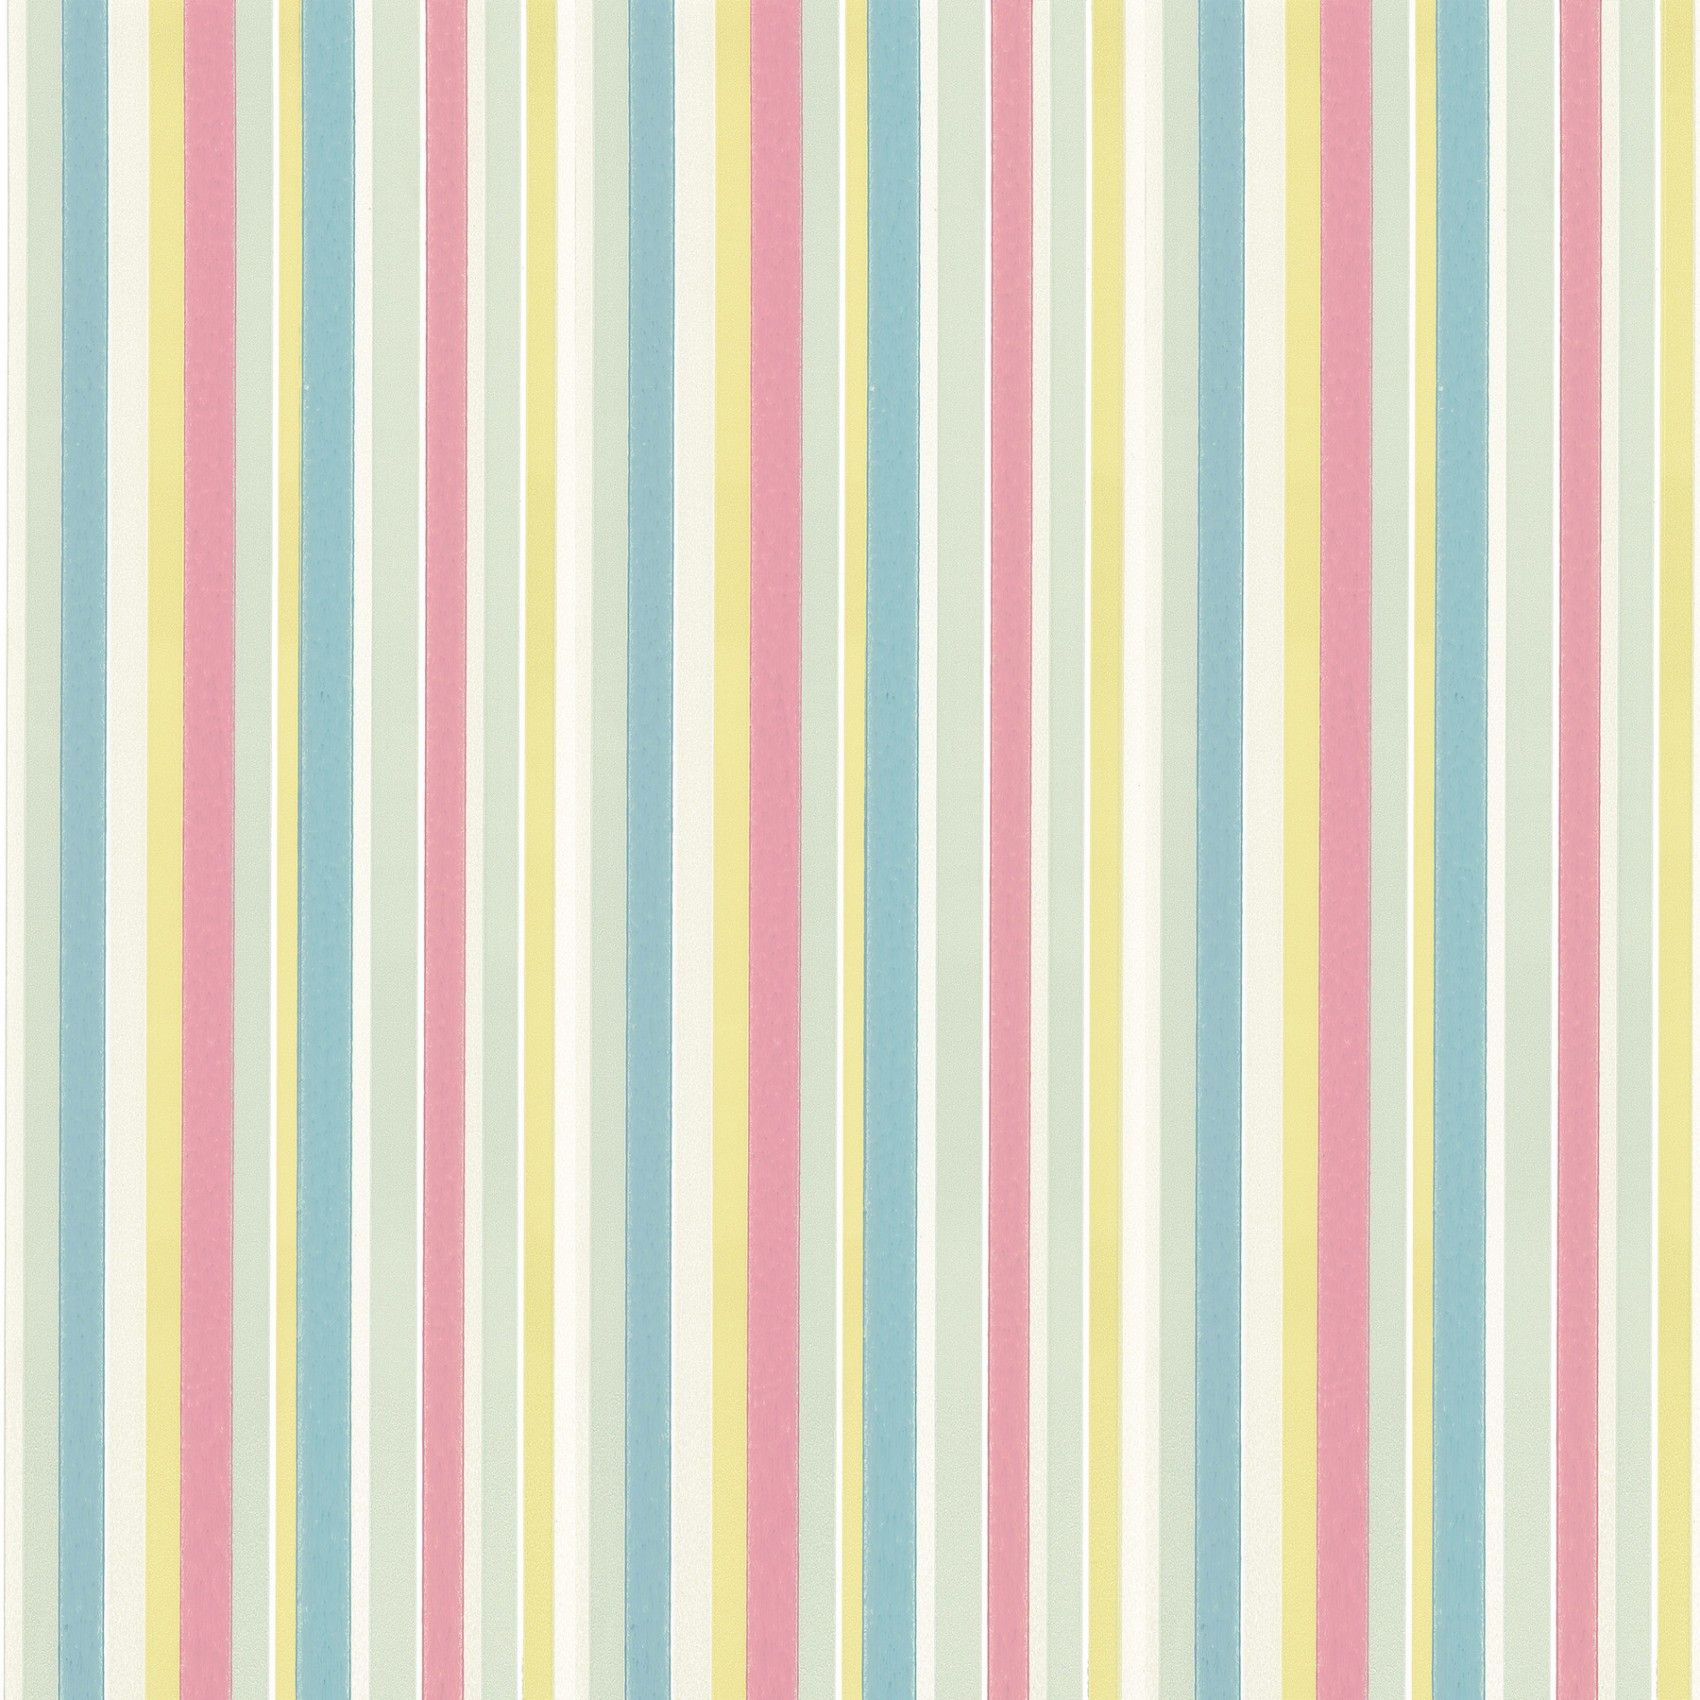 Striped Wallpapers - Top Free Striped